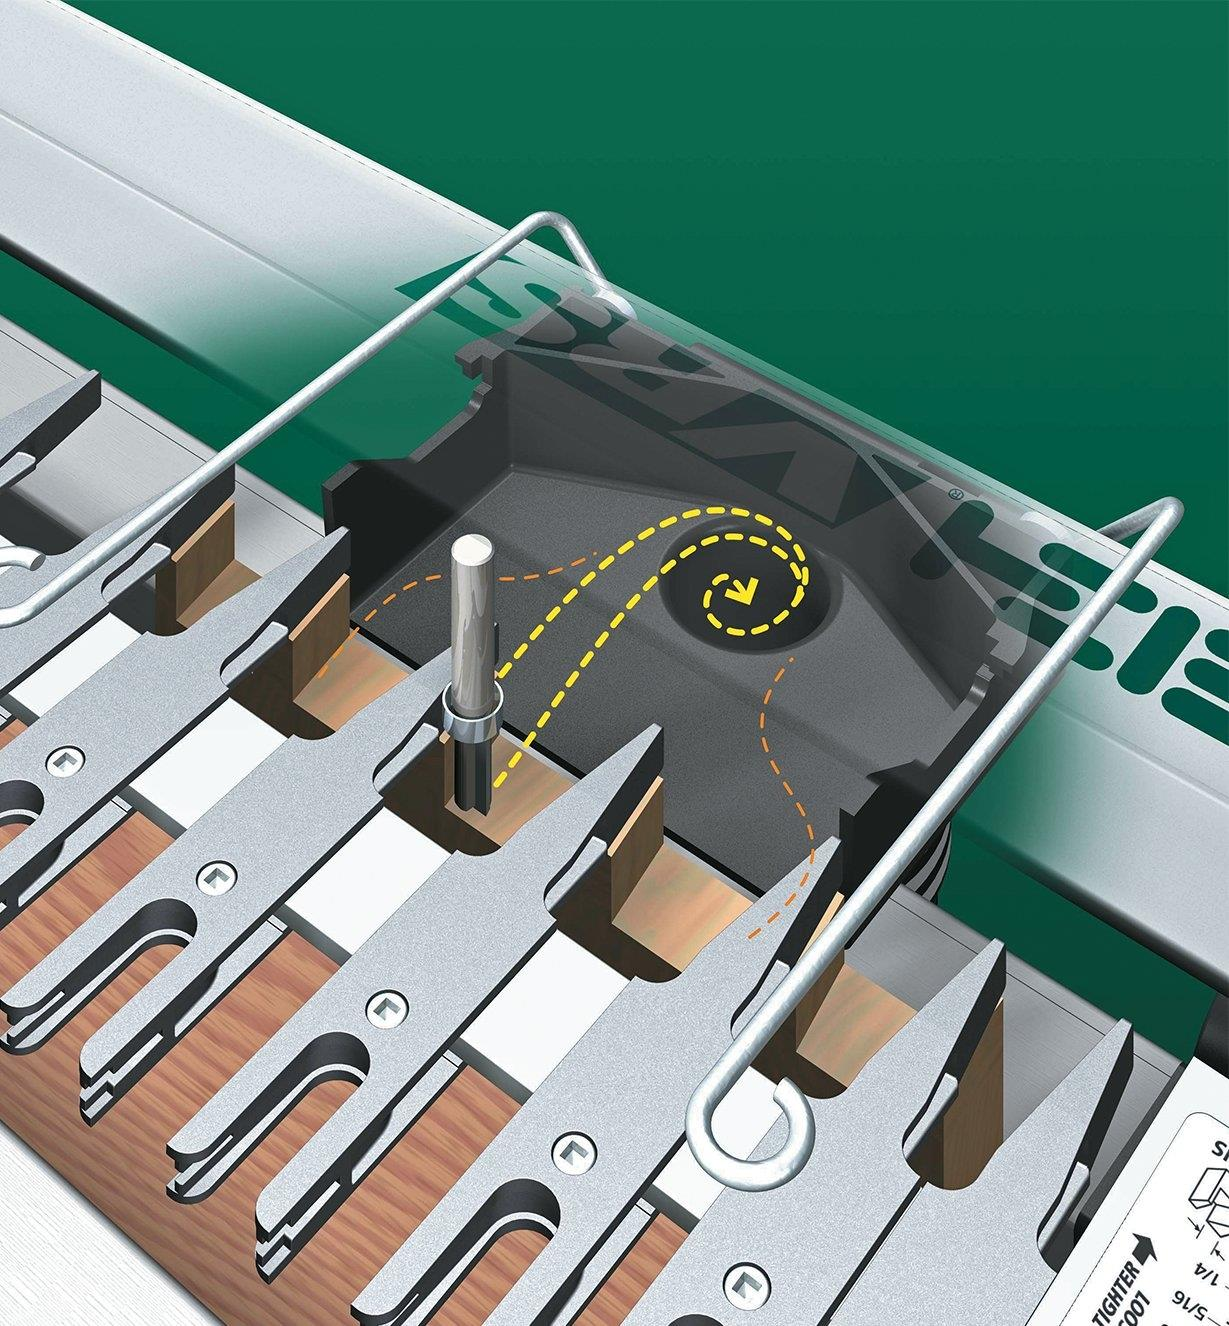 Illustration showing how chips and sawdust are drawn into the vacuum chute.